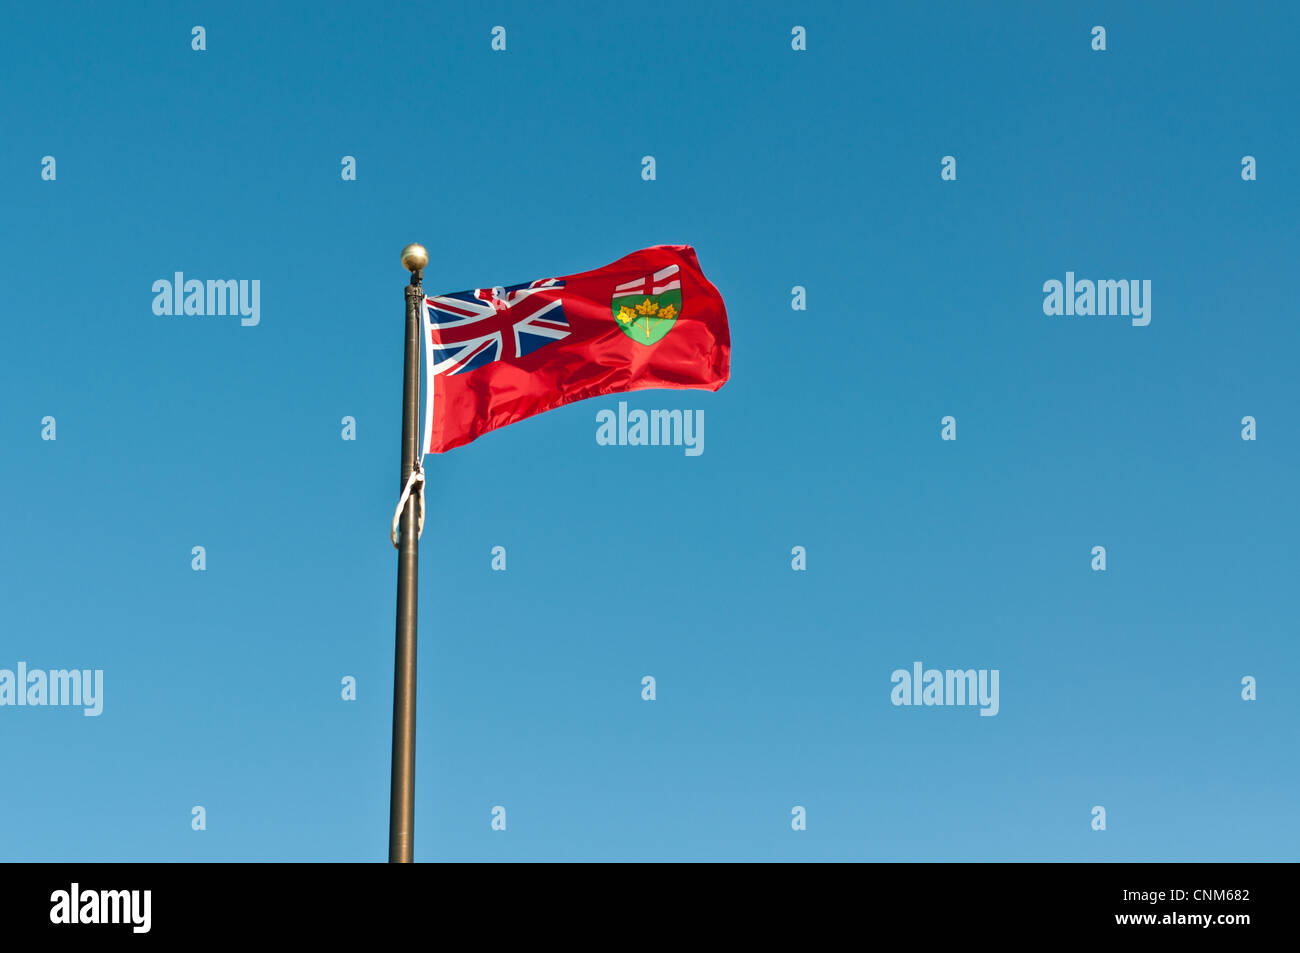 The provincial flag of Ontario flies on a flagpole with a deep blue sky in the background. - Stock Image